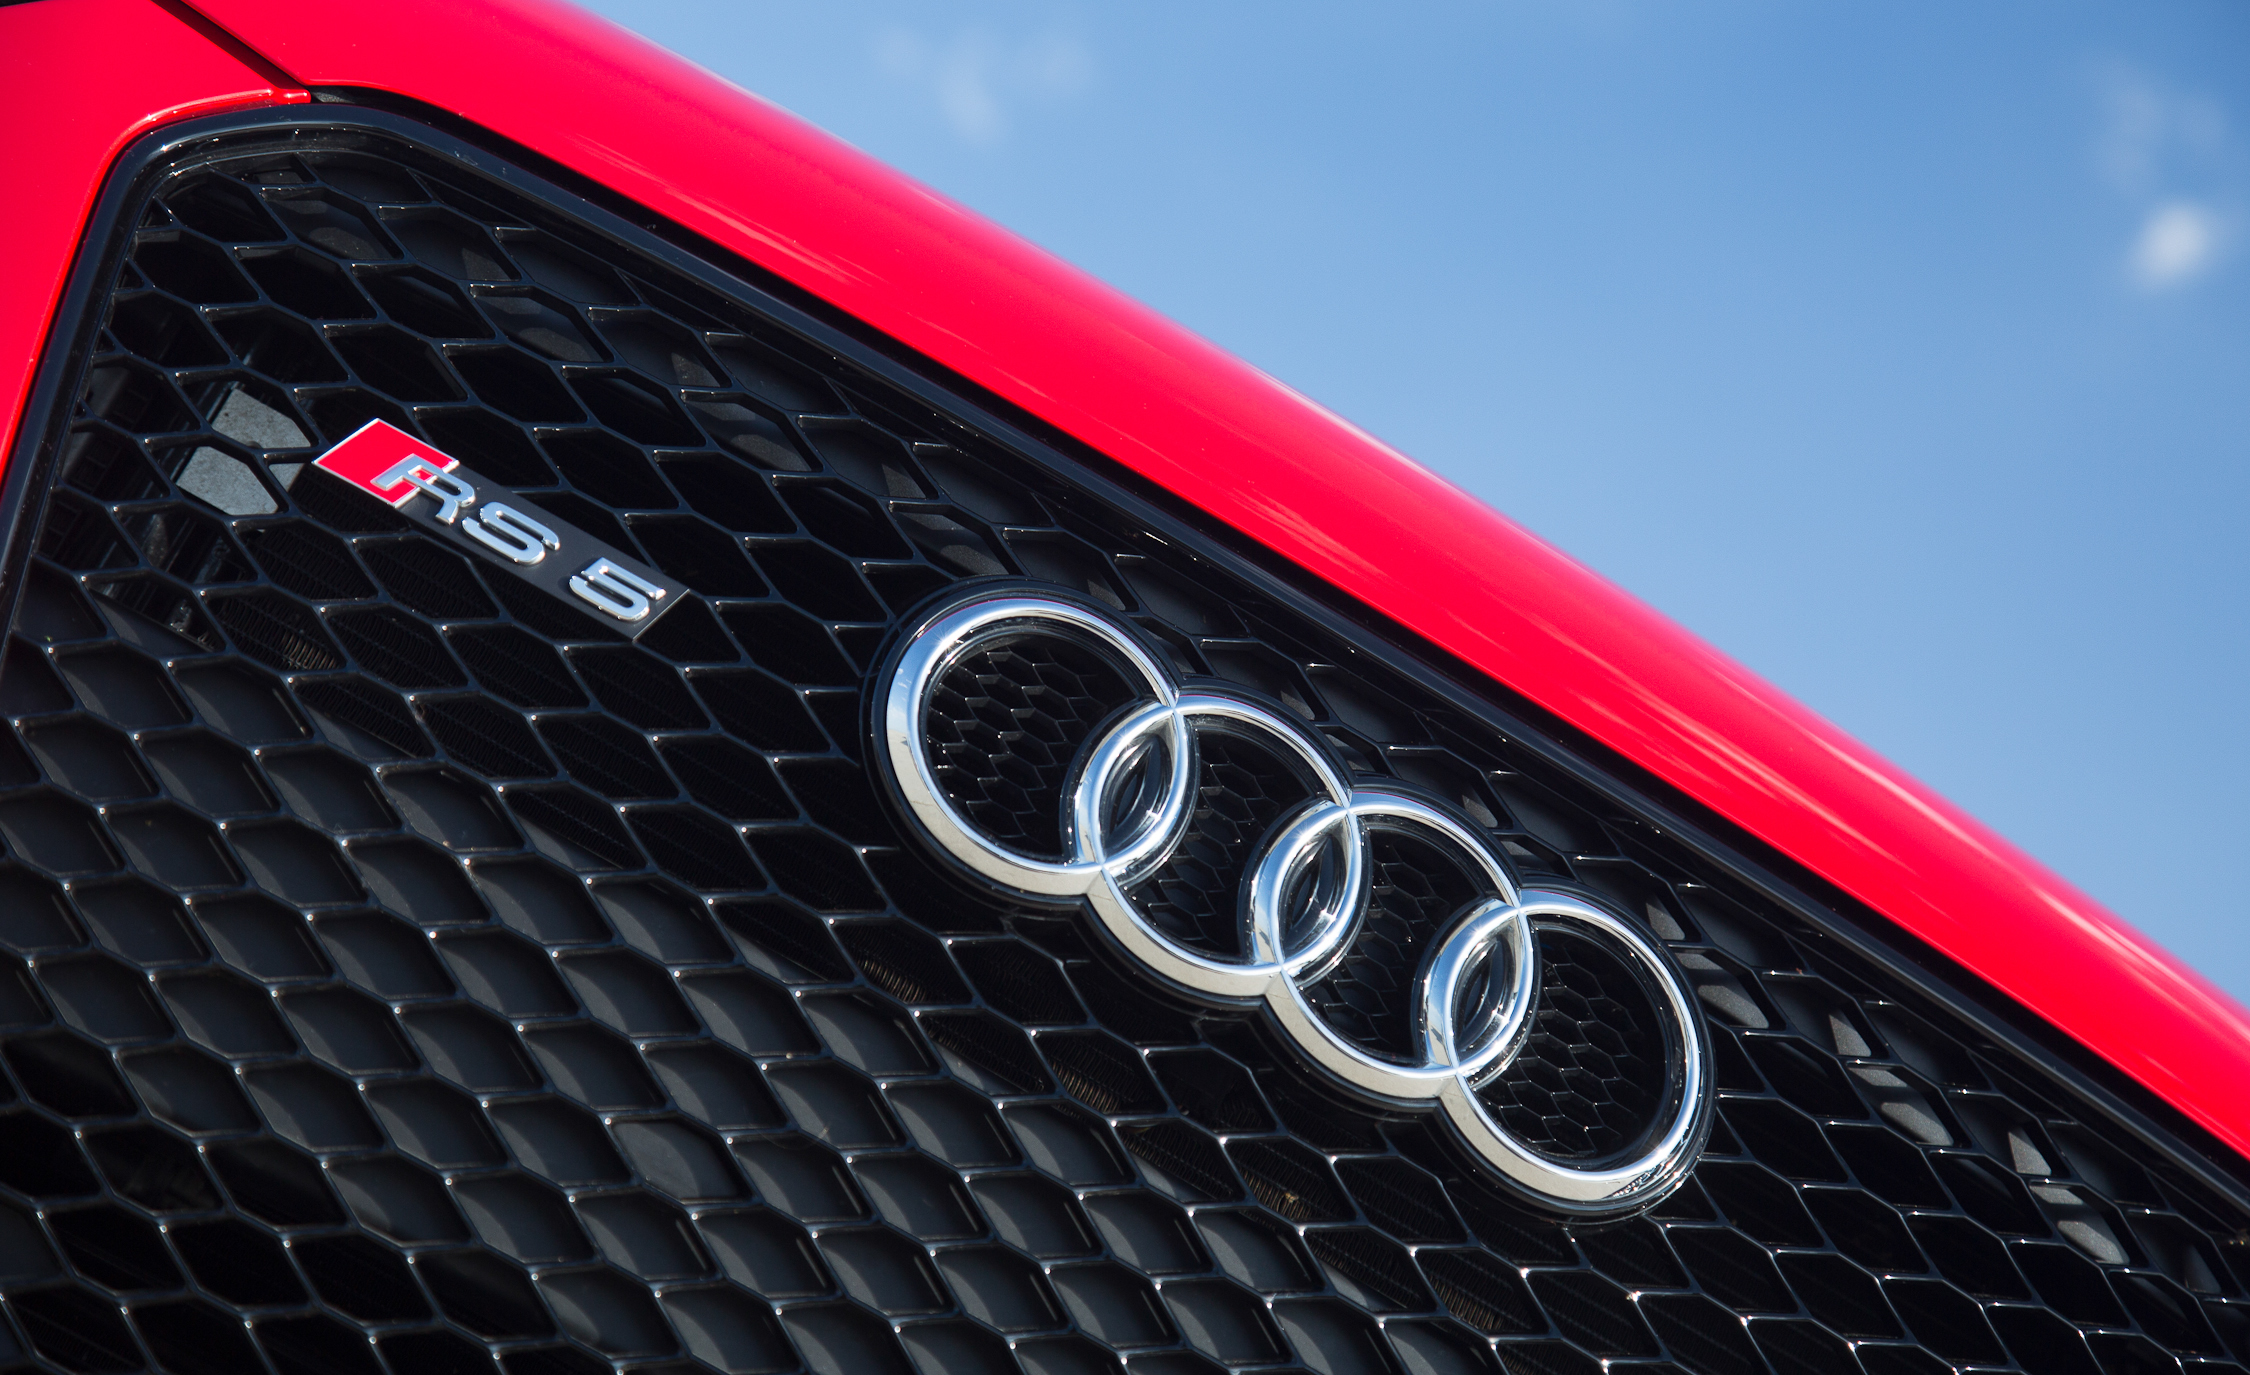 2013 Audi RS 5 Exterior View Front Badge And Grille (View 13 of 41)